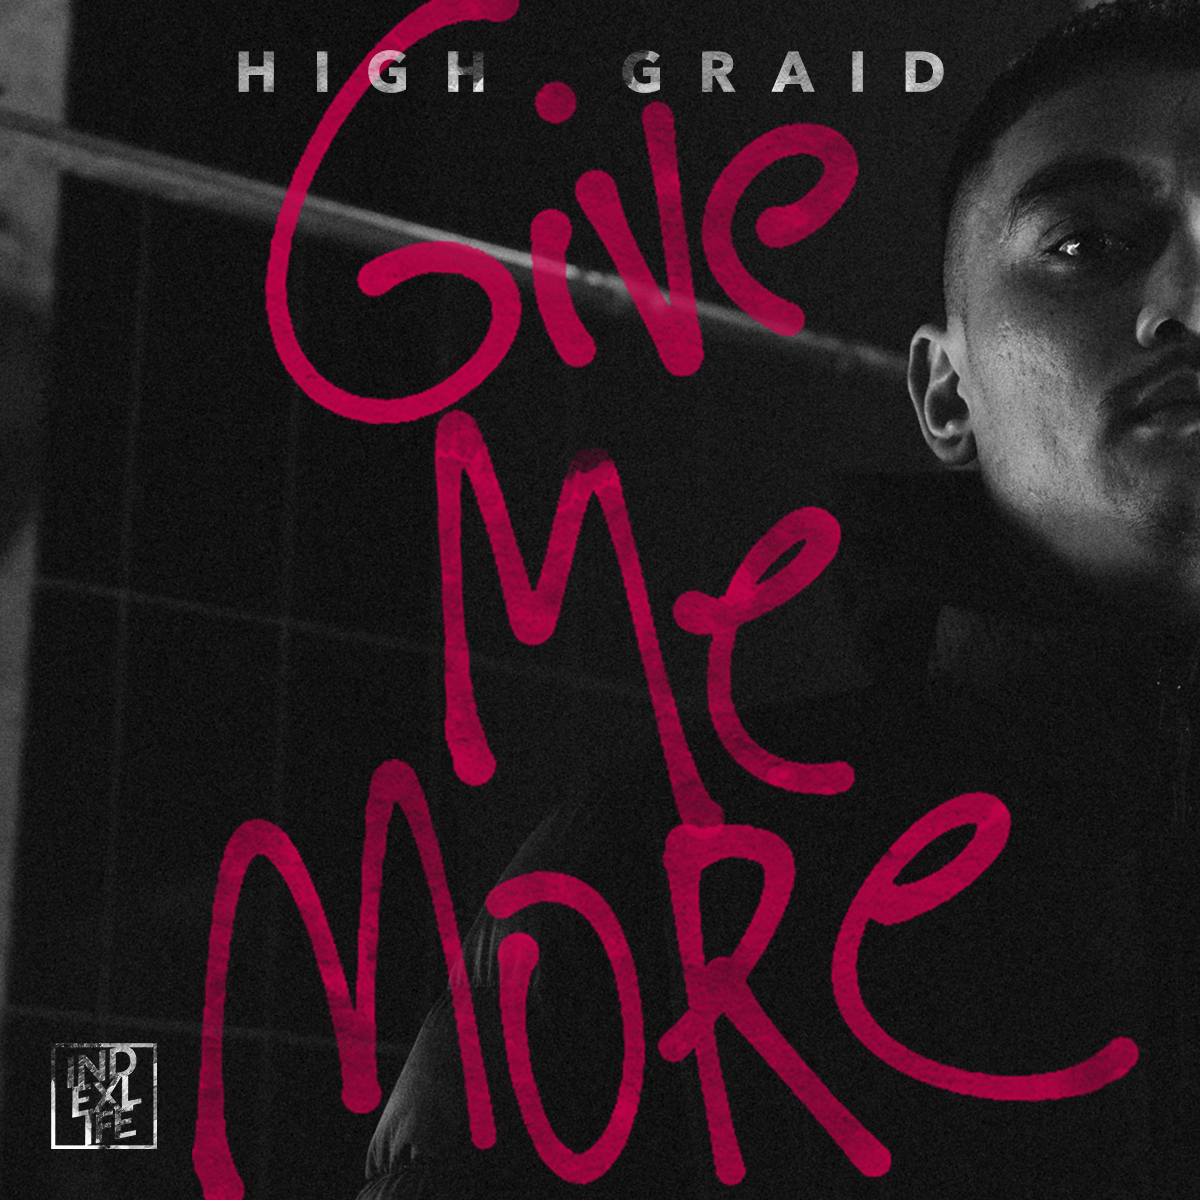 high graid give me more indexlife couvre x chefs